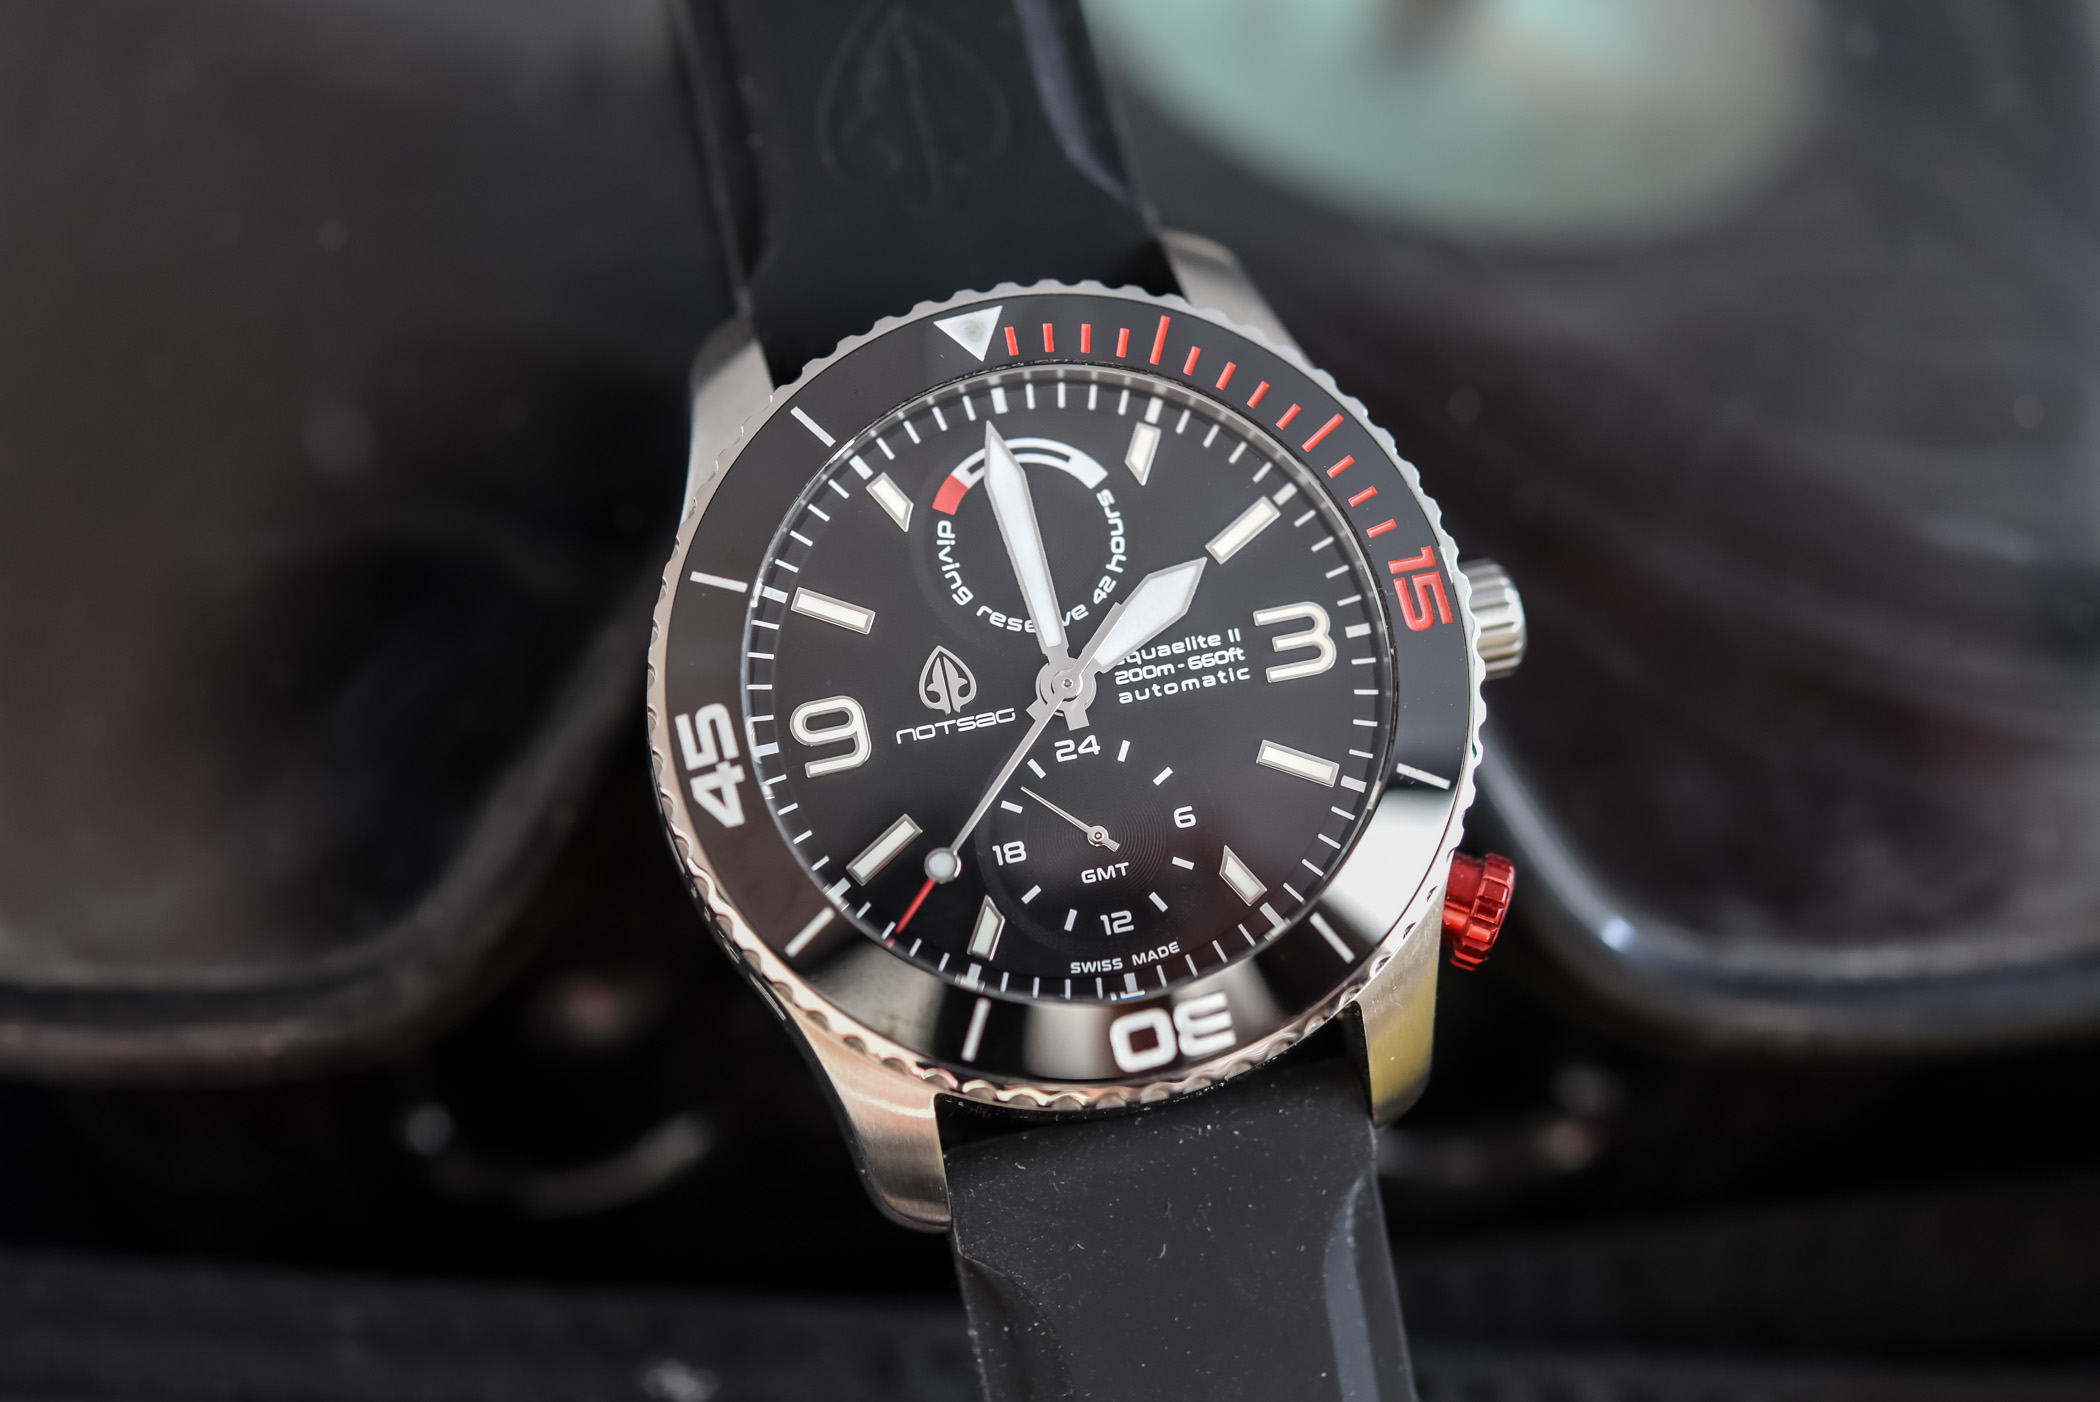 NOTSAG Aquaelite Type II GMT